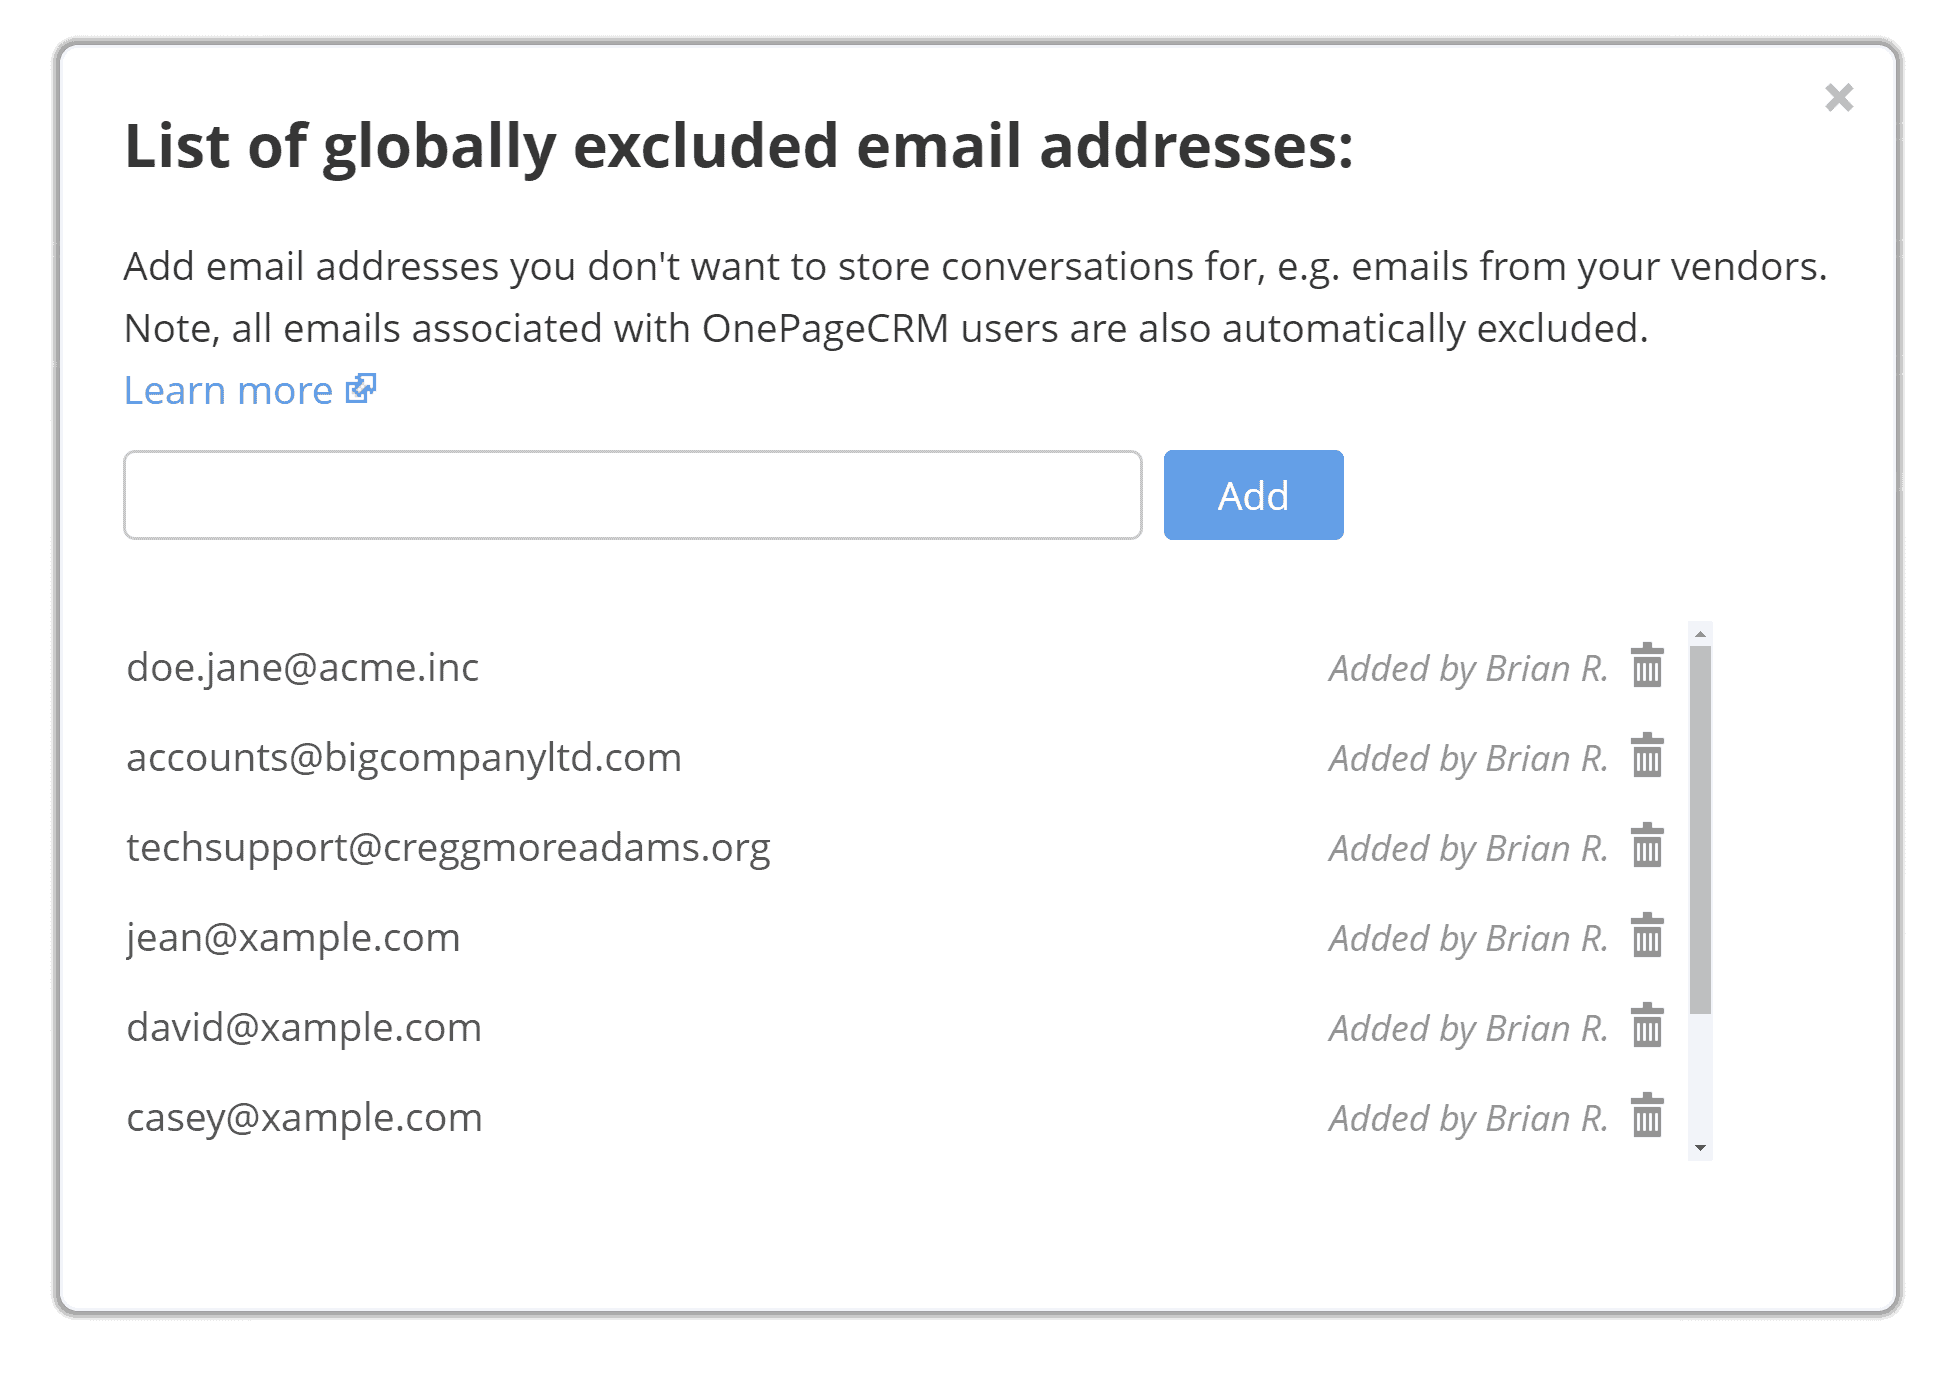 OnePageCRM email privacy